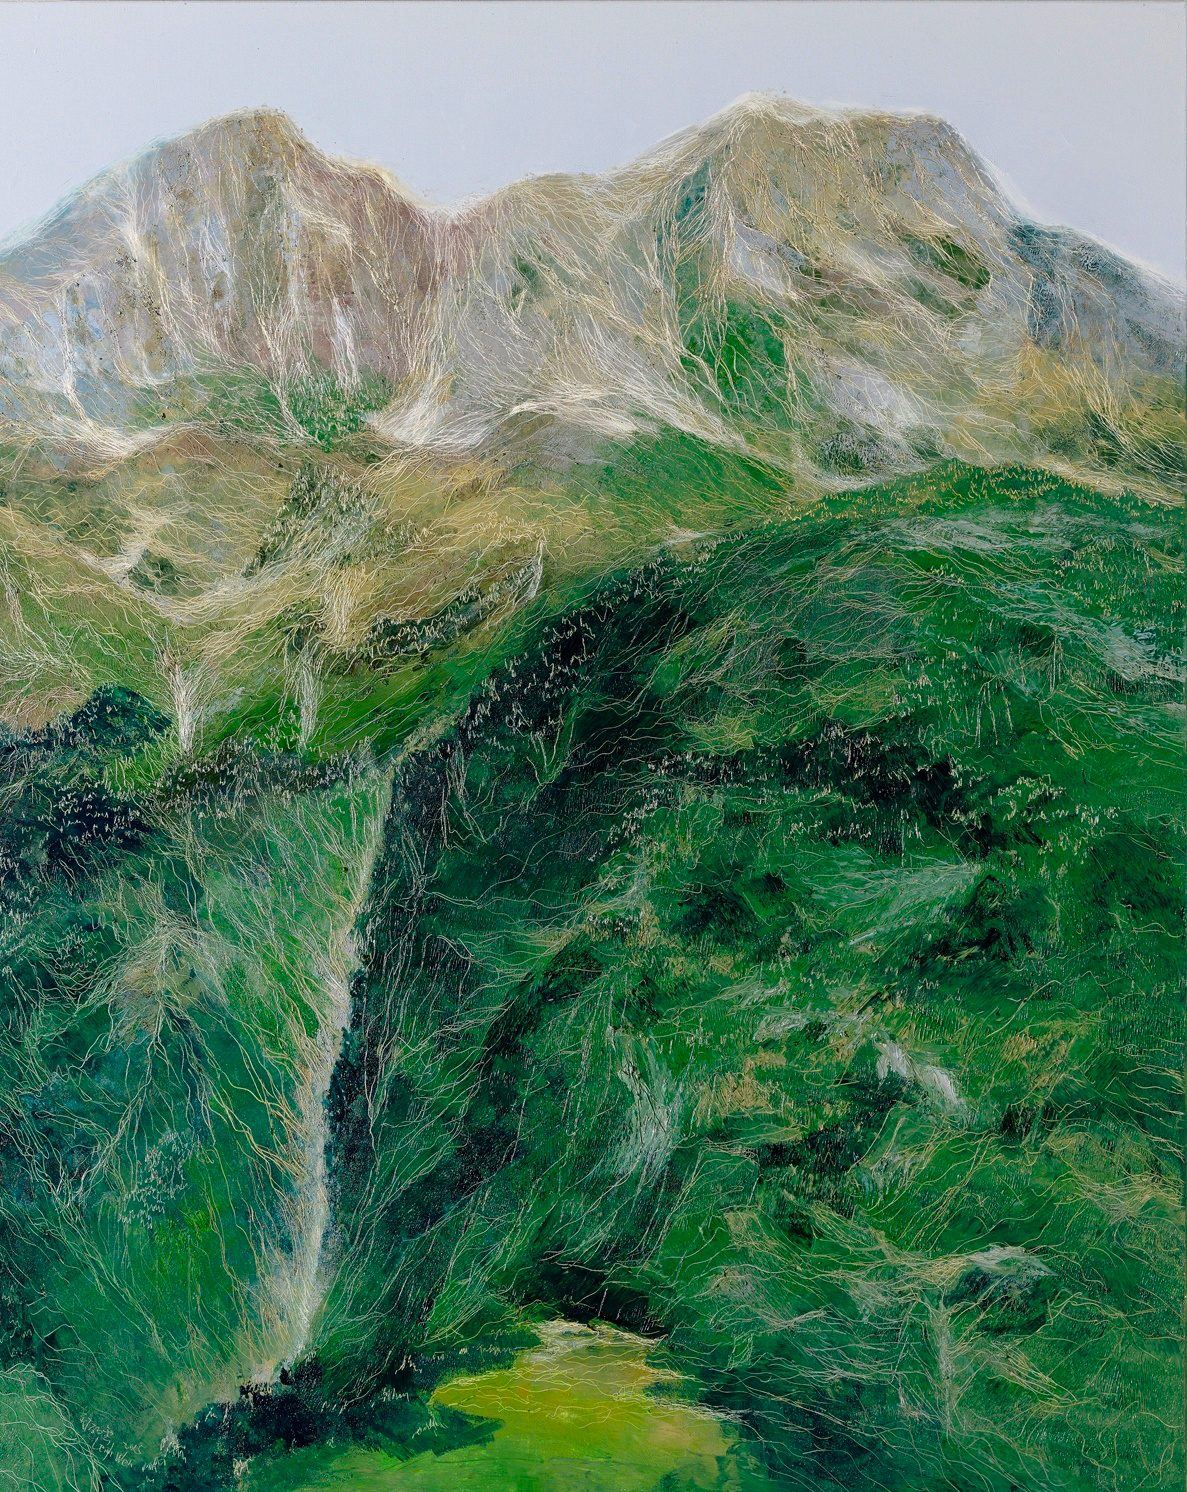 綠意, Green Edge, 162 x 130 cm, oil on canvas, 2015